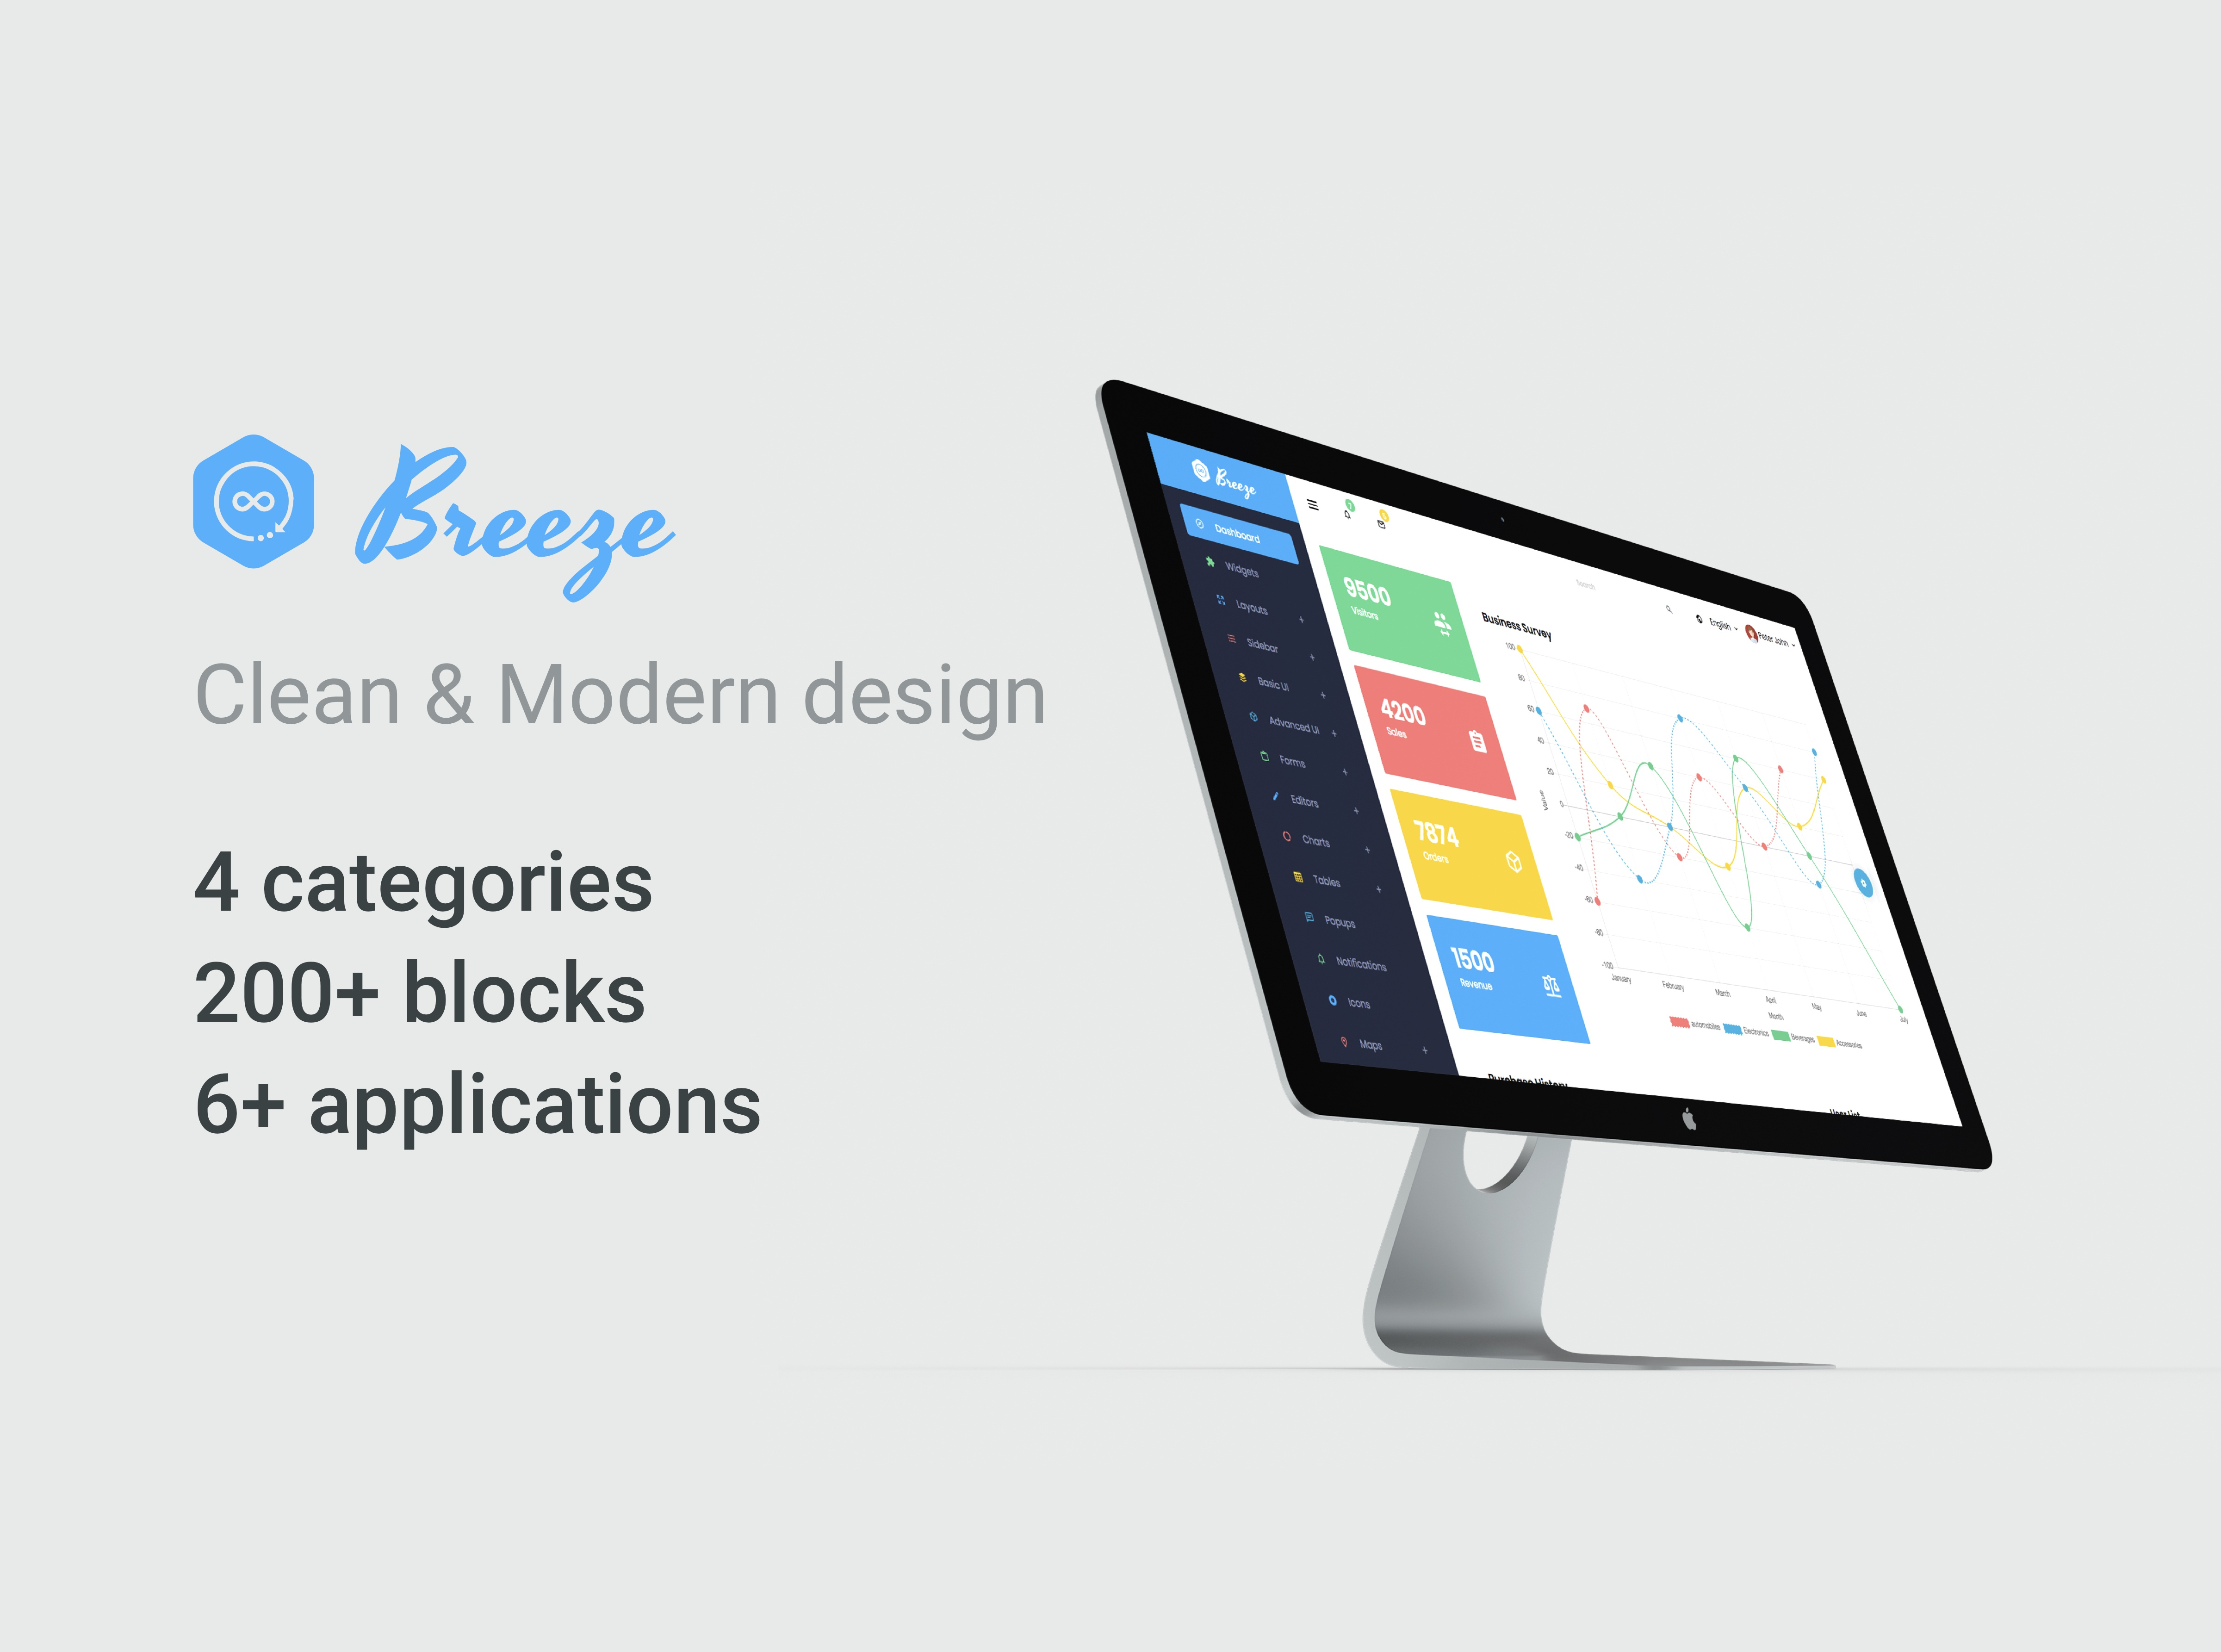 Breeze dribbble 1